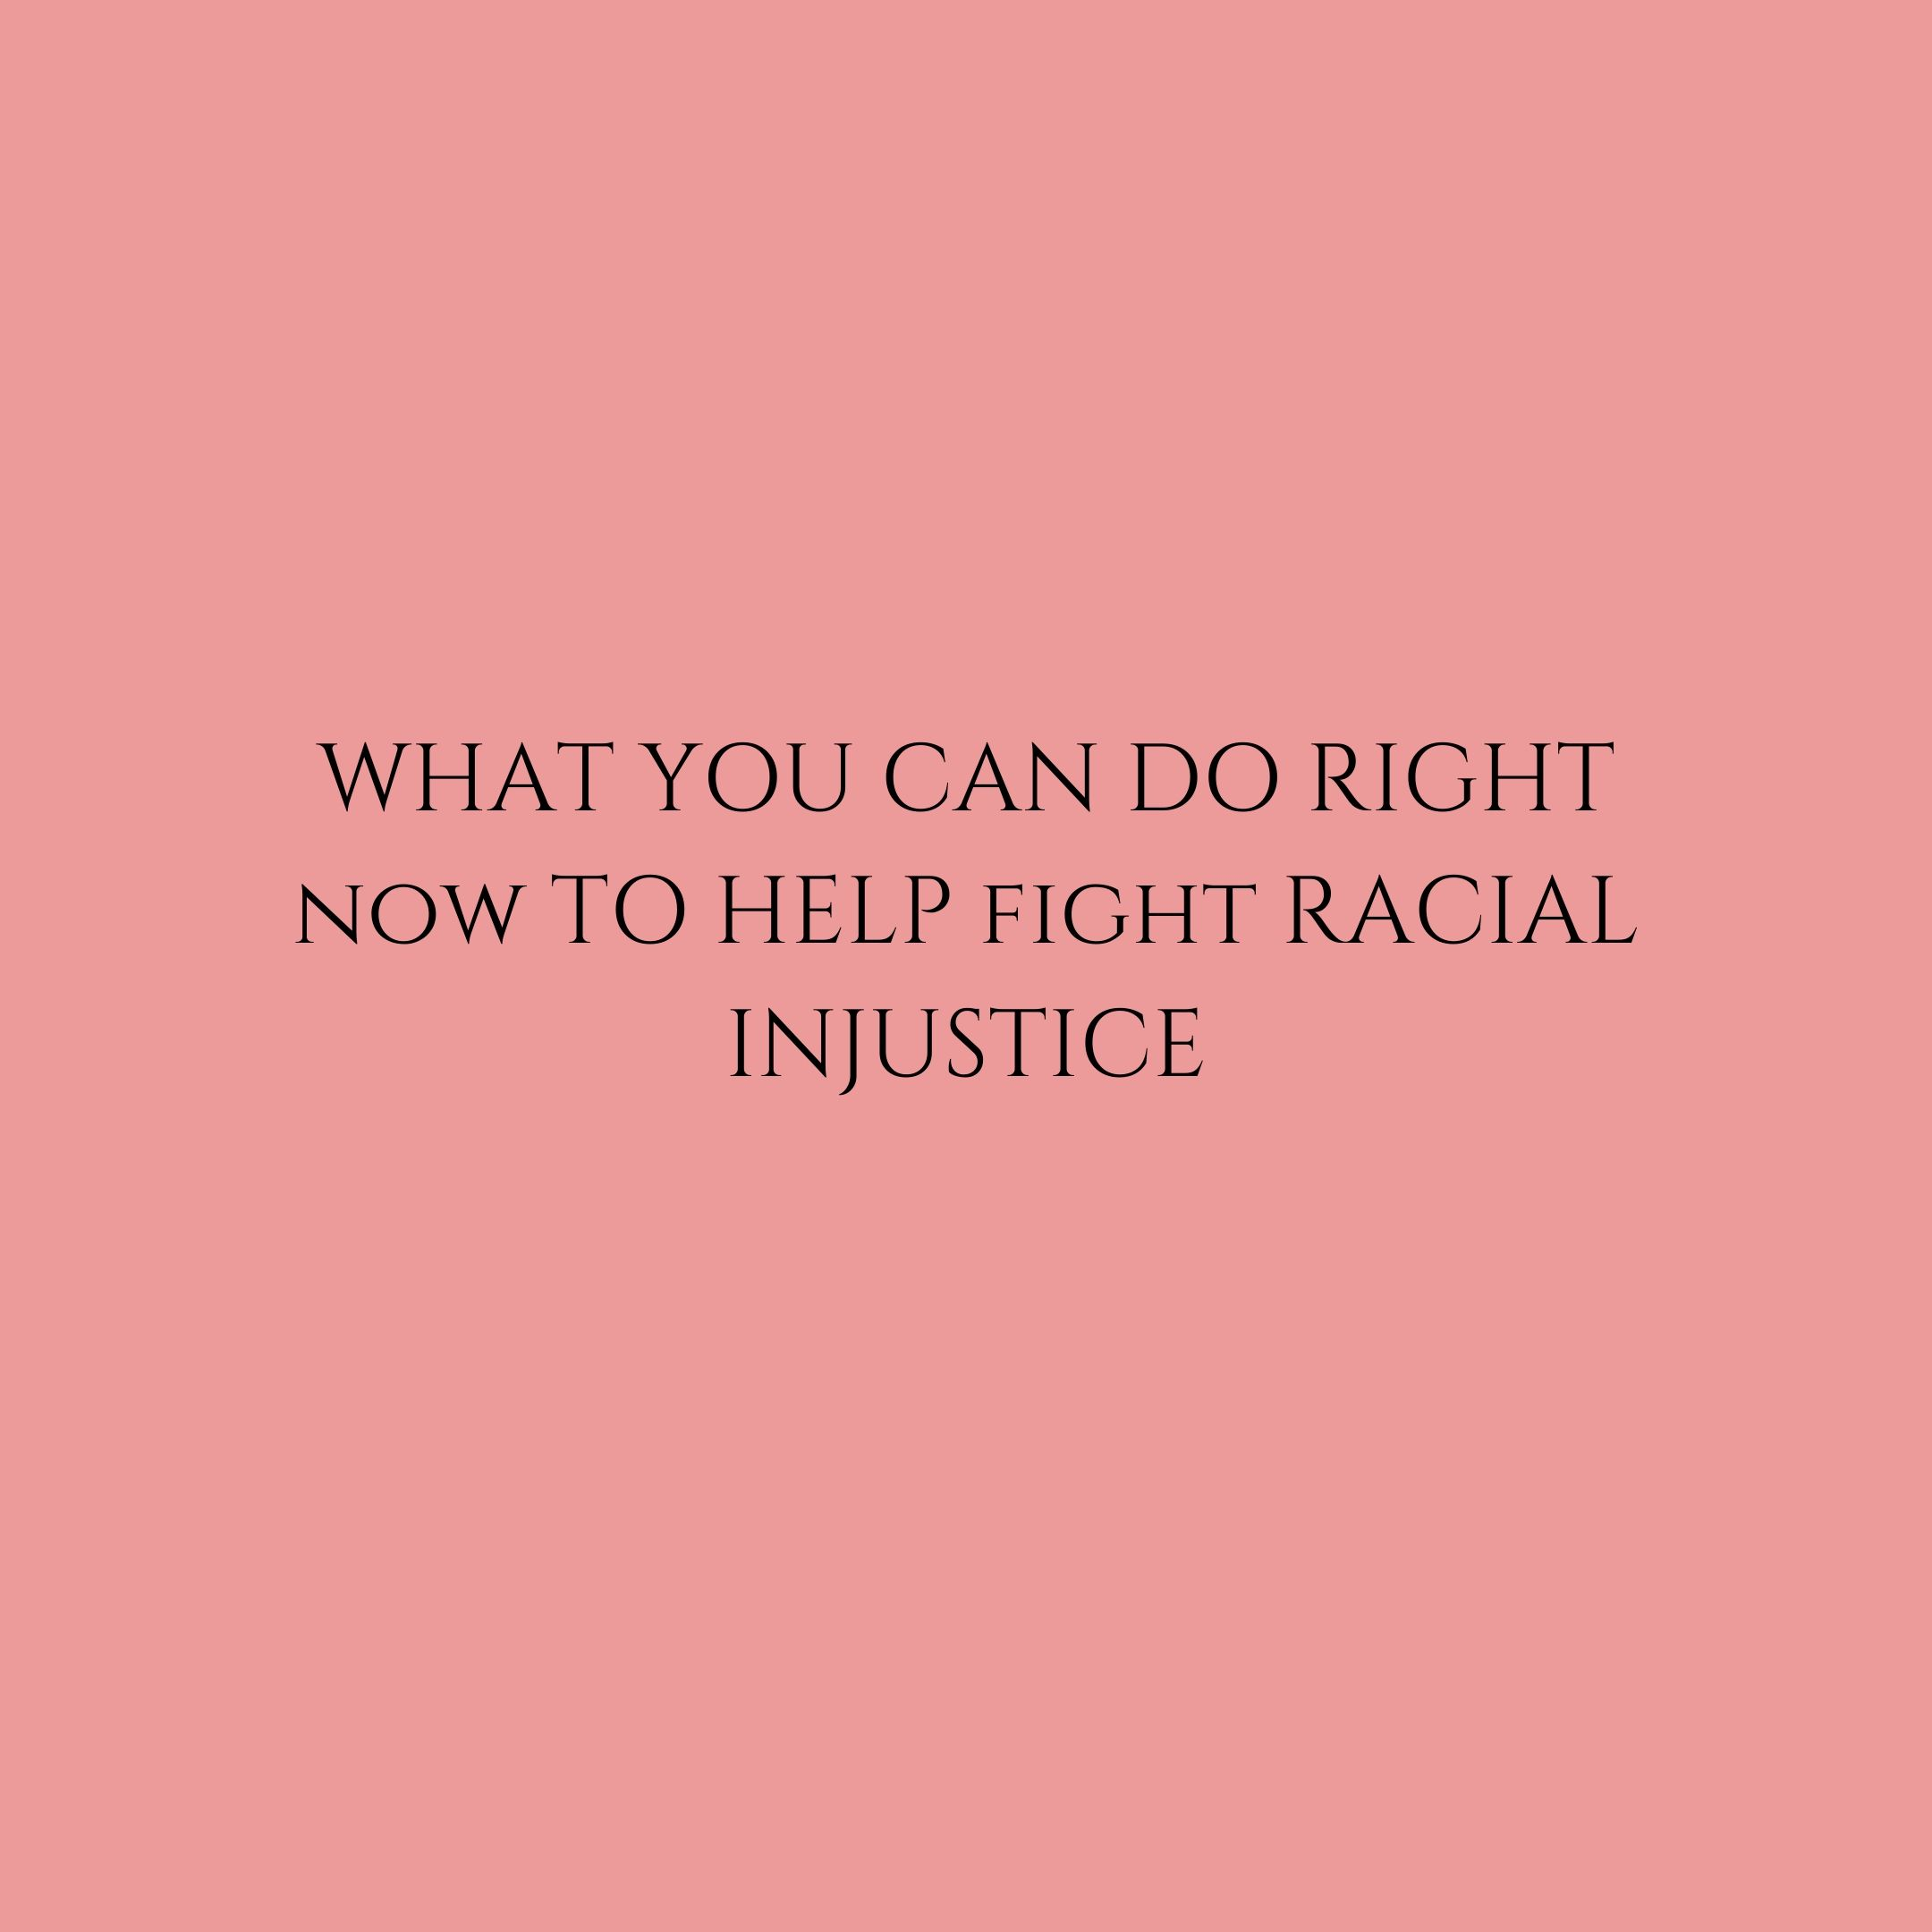 help fight racial injustice